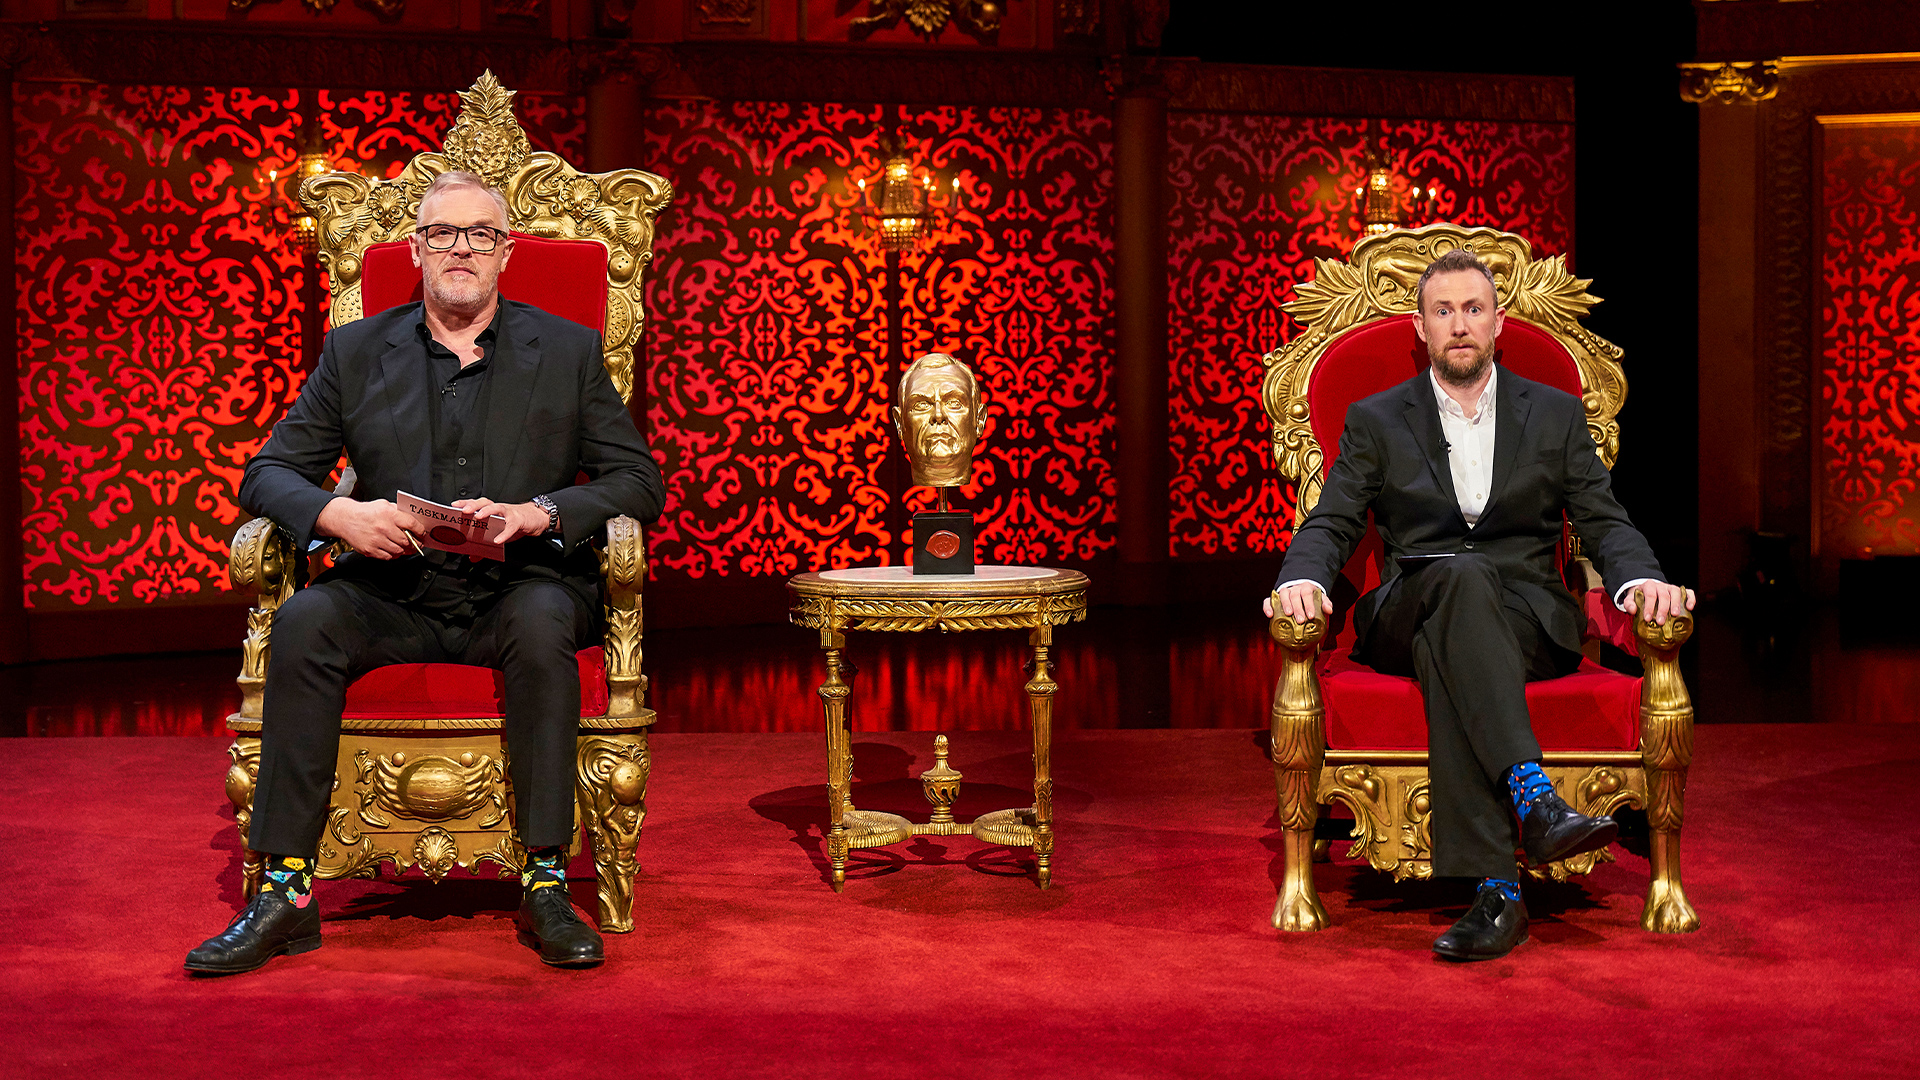 Bring Me The Head Of The Taskmaster – Part Treasure Hunt, Part Game Launches Today